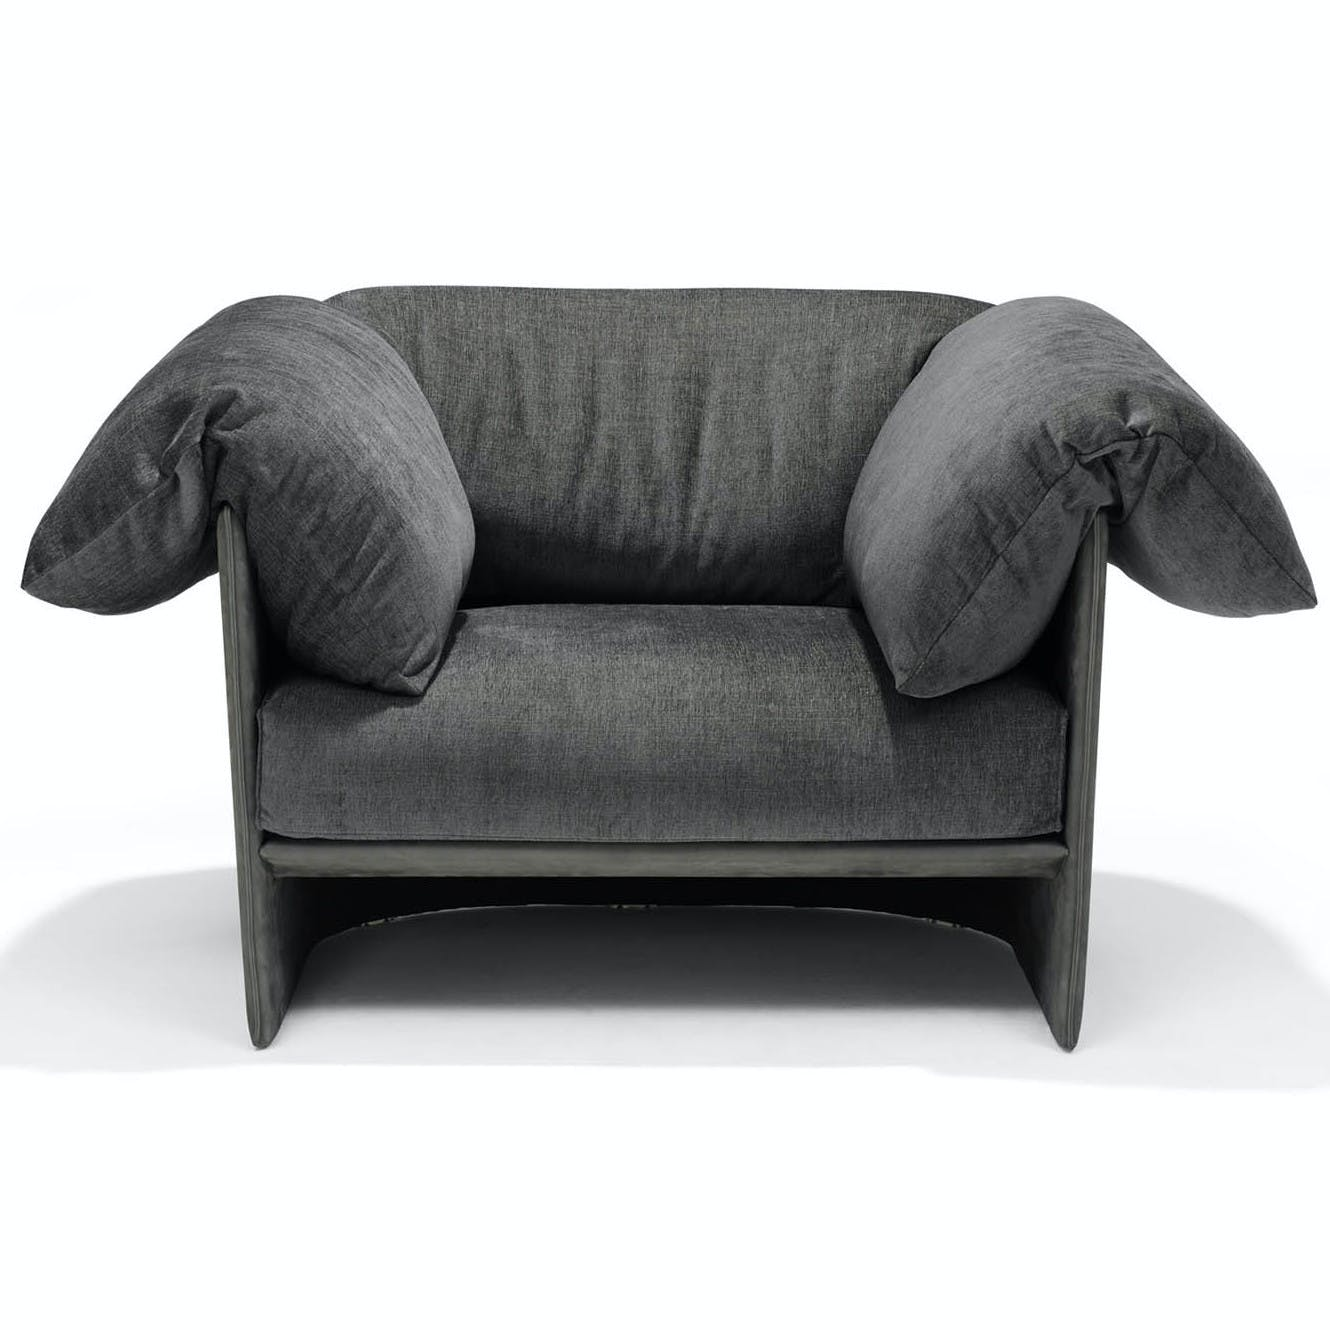 Linteloo-front-highline-armchair-haute-living